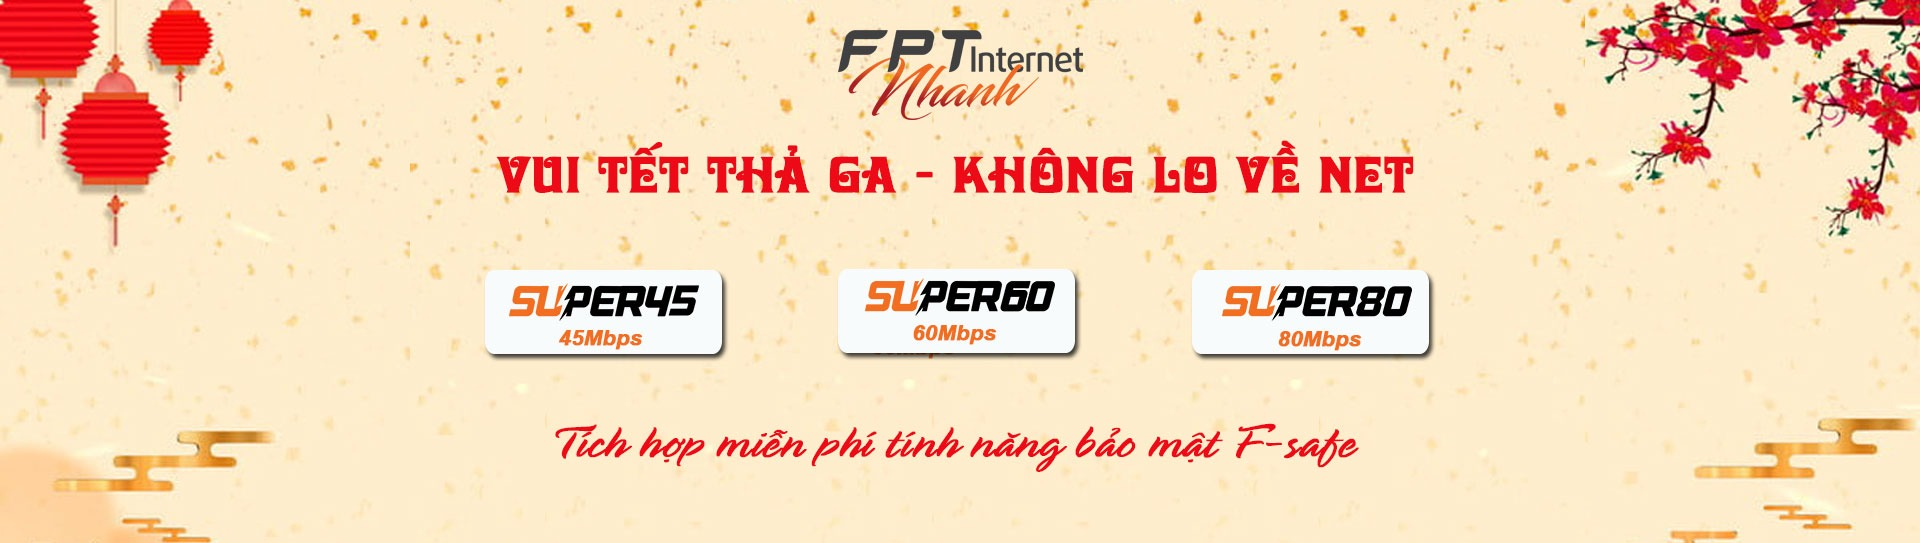 Internet Fpt Foxfpt.vn